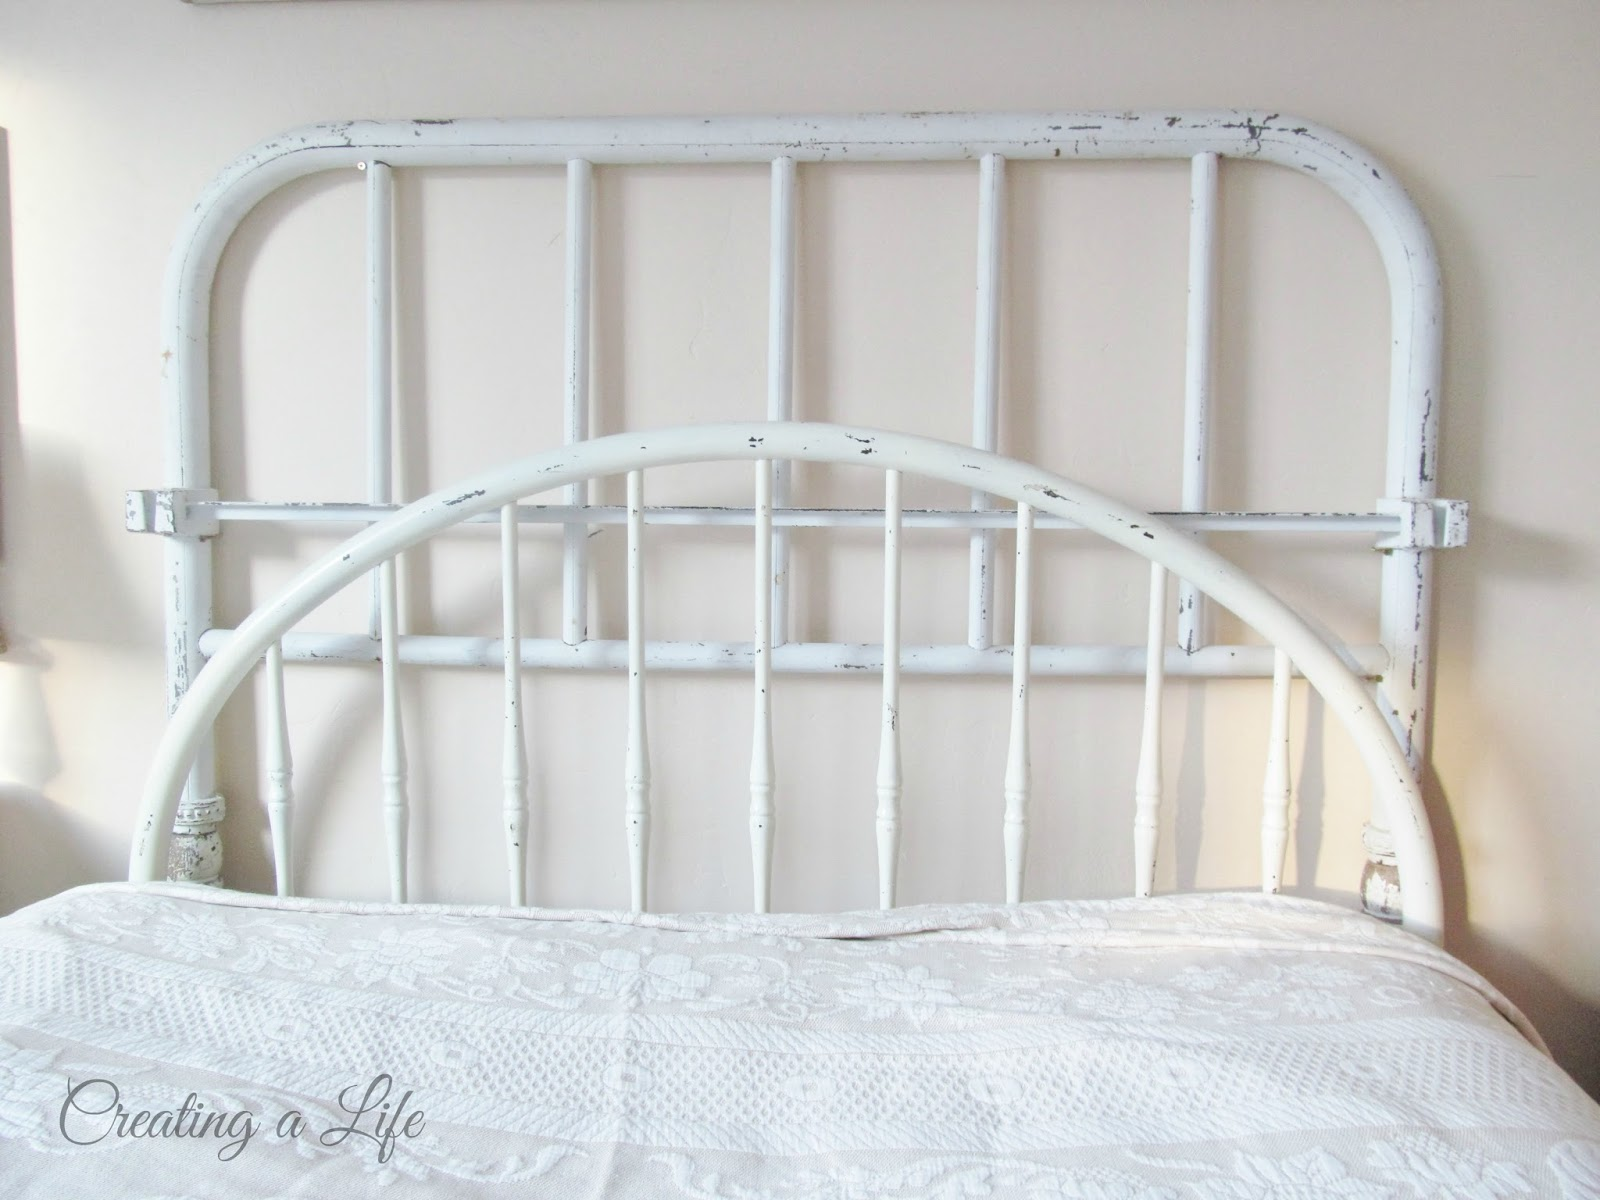 Wrought Iron Headboard Queen Unconvincing Lovely Rod Antique Headboards  Berlinkaffee Interior Design Rod Iron Headboards